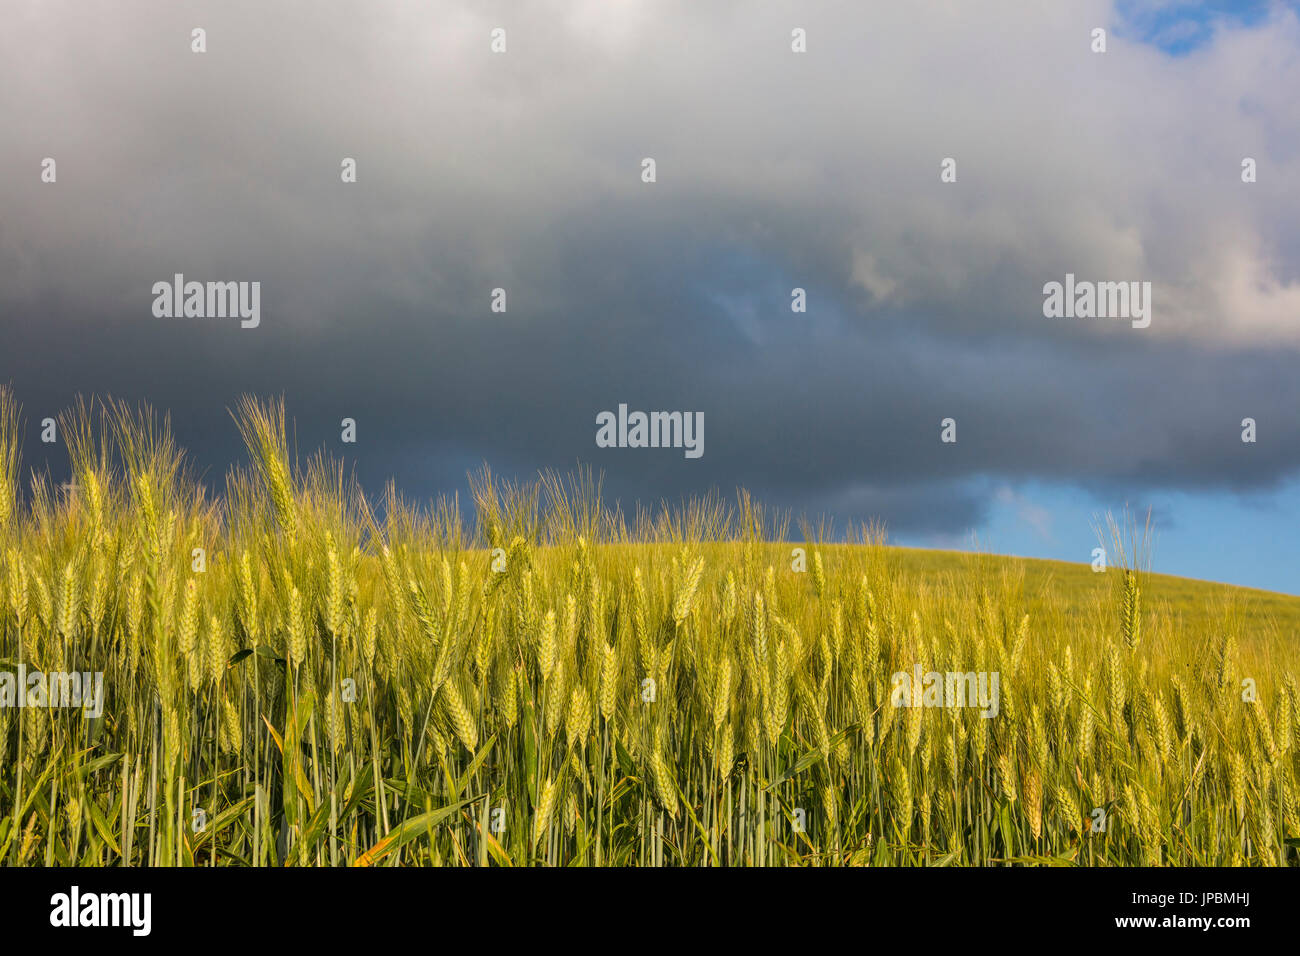 Clouds and sun on the green rolling hills and ears of corn Crete Senesi (Senese Clays) province of Siena Tuscany Stock Photo